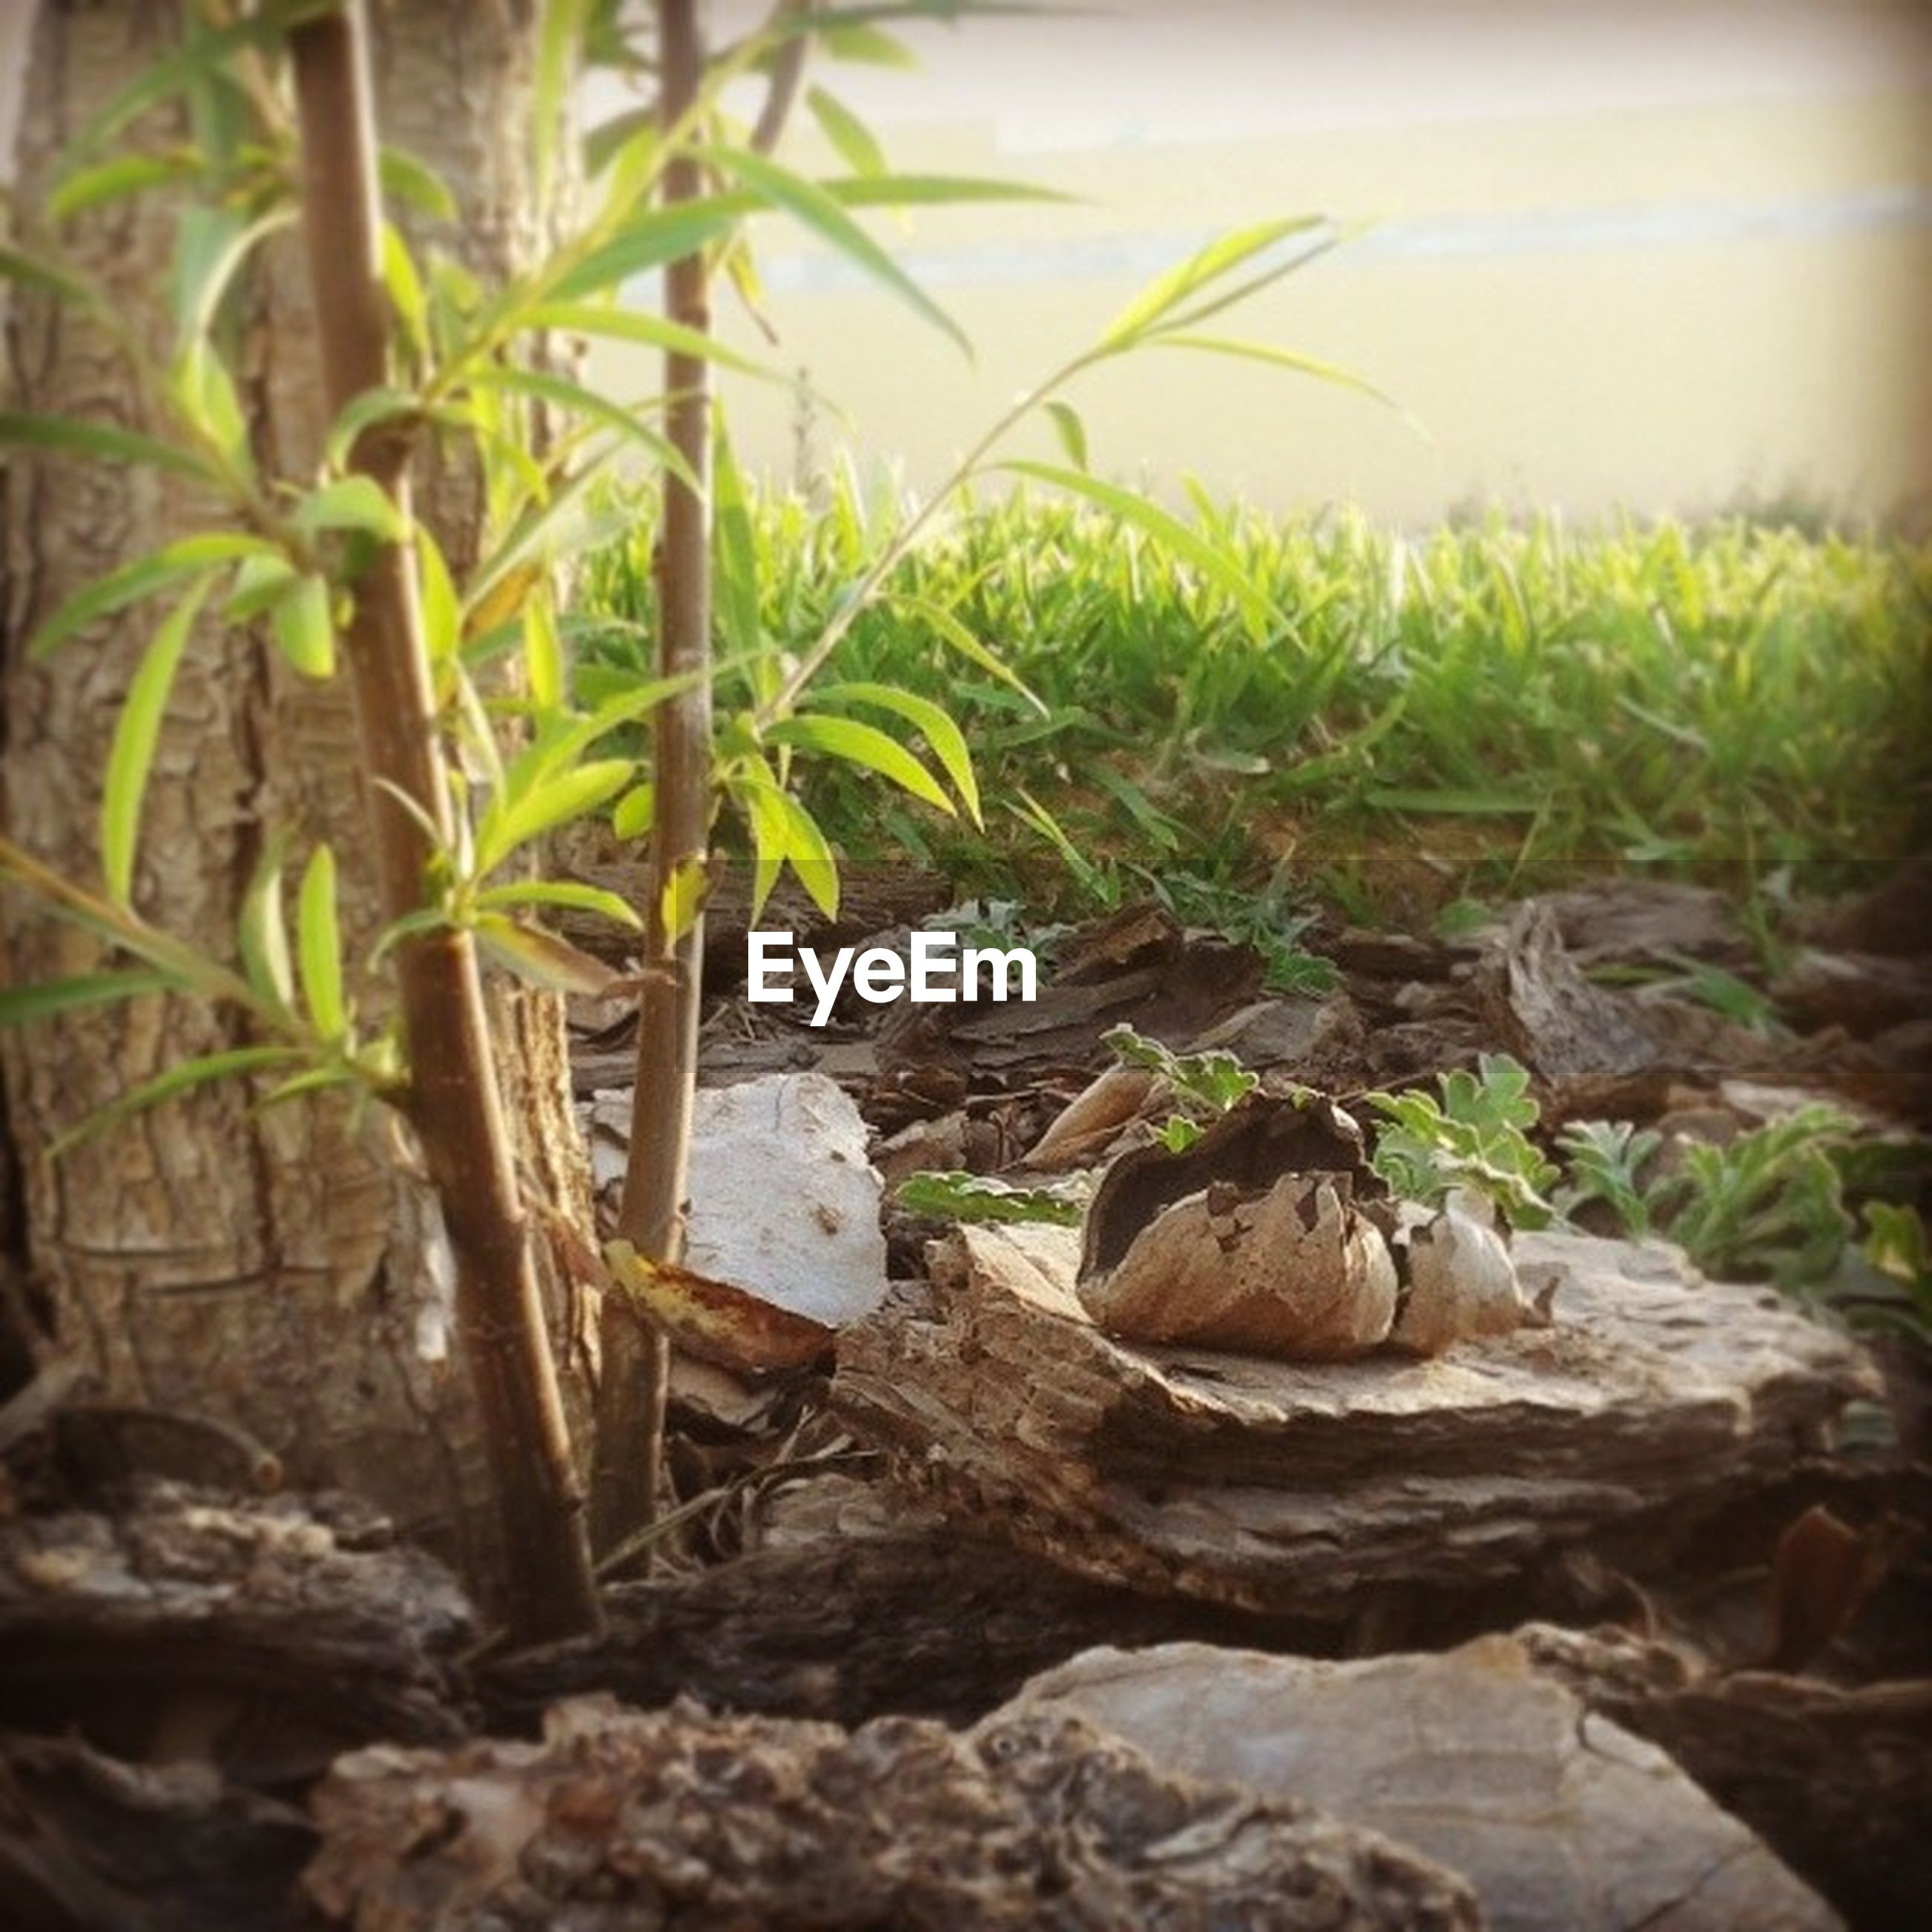 plant, rock - object, growth, abandoned, wood - material, nature, green color, selective focus, sunlight, day, no people, damaged, leaf, obsolete, outdoors, field, stone - object, close-up, dirt, tranquility